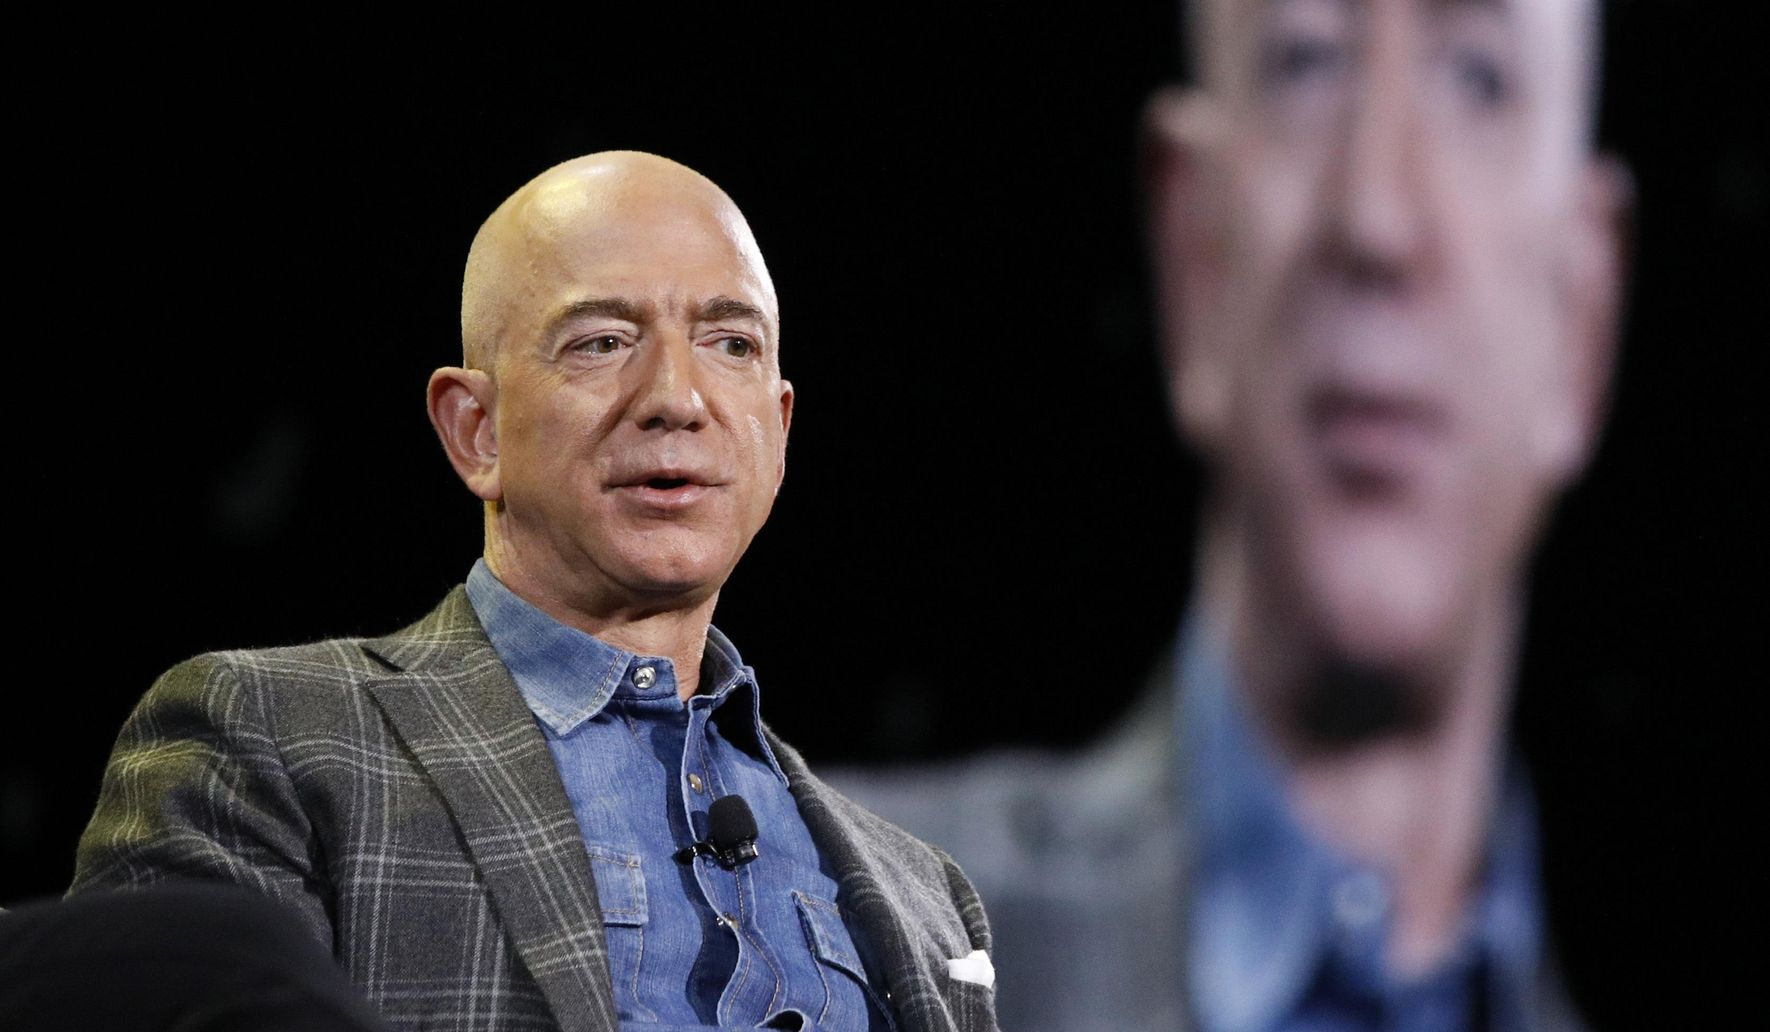 Amazon Starts New Chapter as Jeff Bezos Steps Down and Andy Jassy Takes Over as CEO